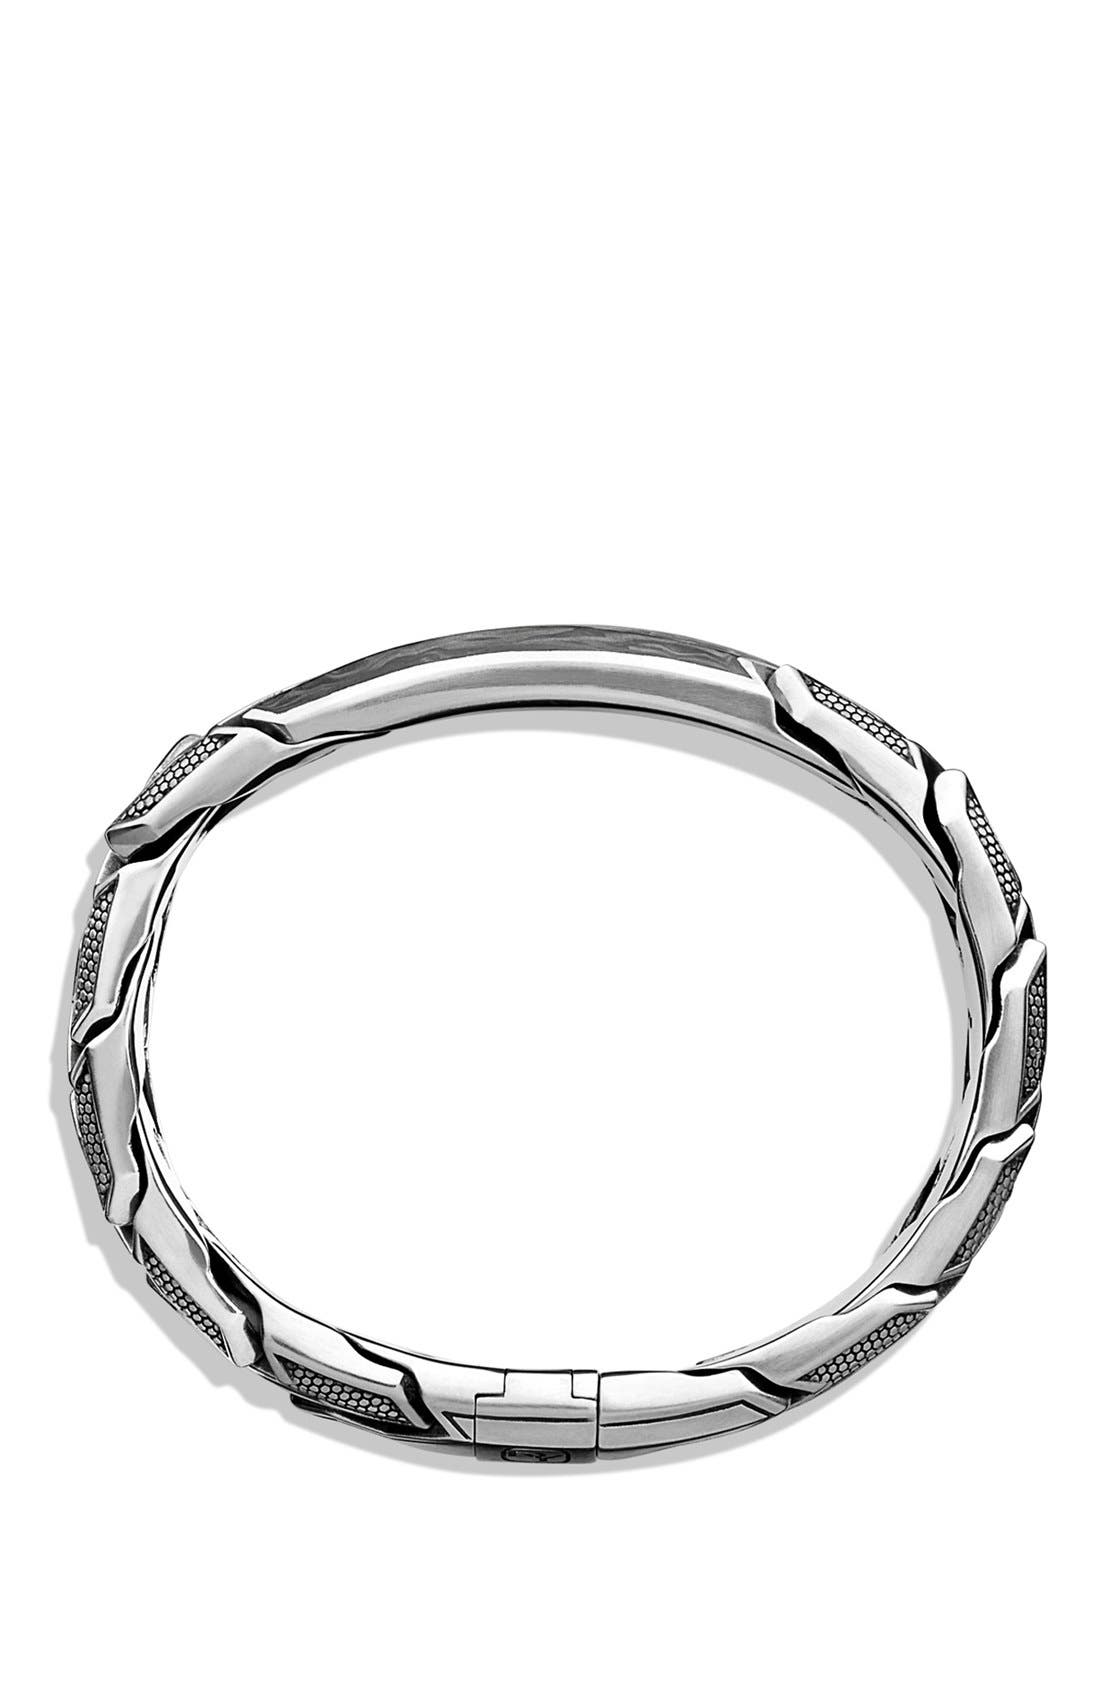 DAVID YURMAN,                             Forged Carbon ID Bracelet,                             Alternate thumbnail 2, color,                             FORGED CARBON